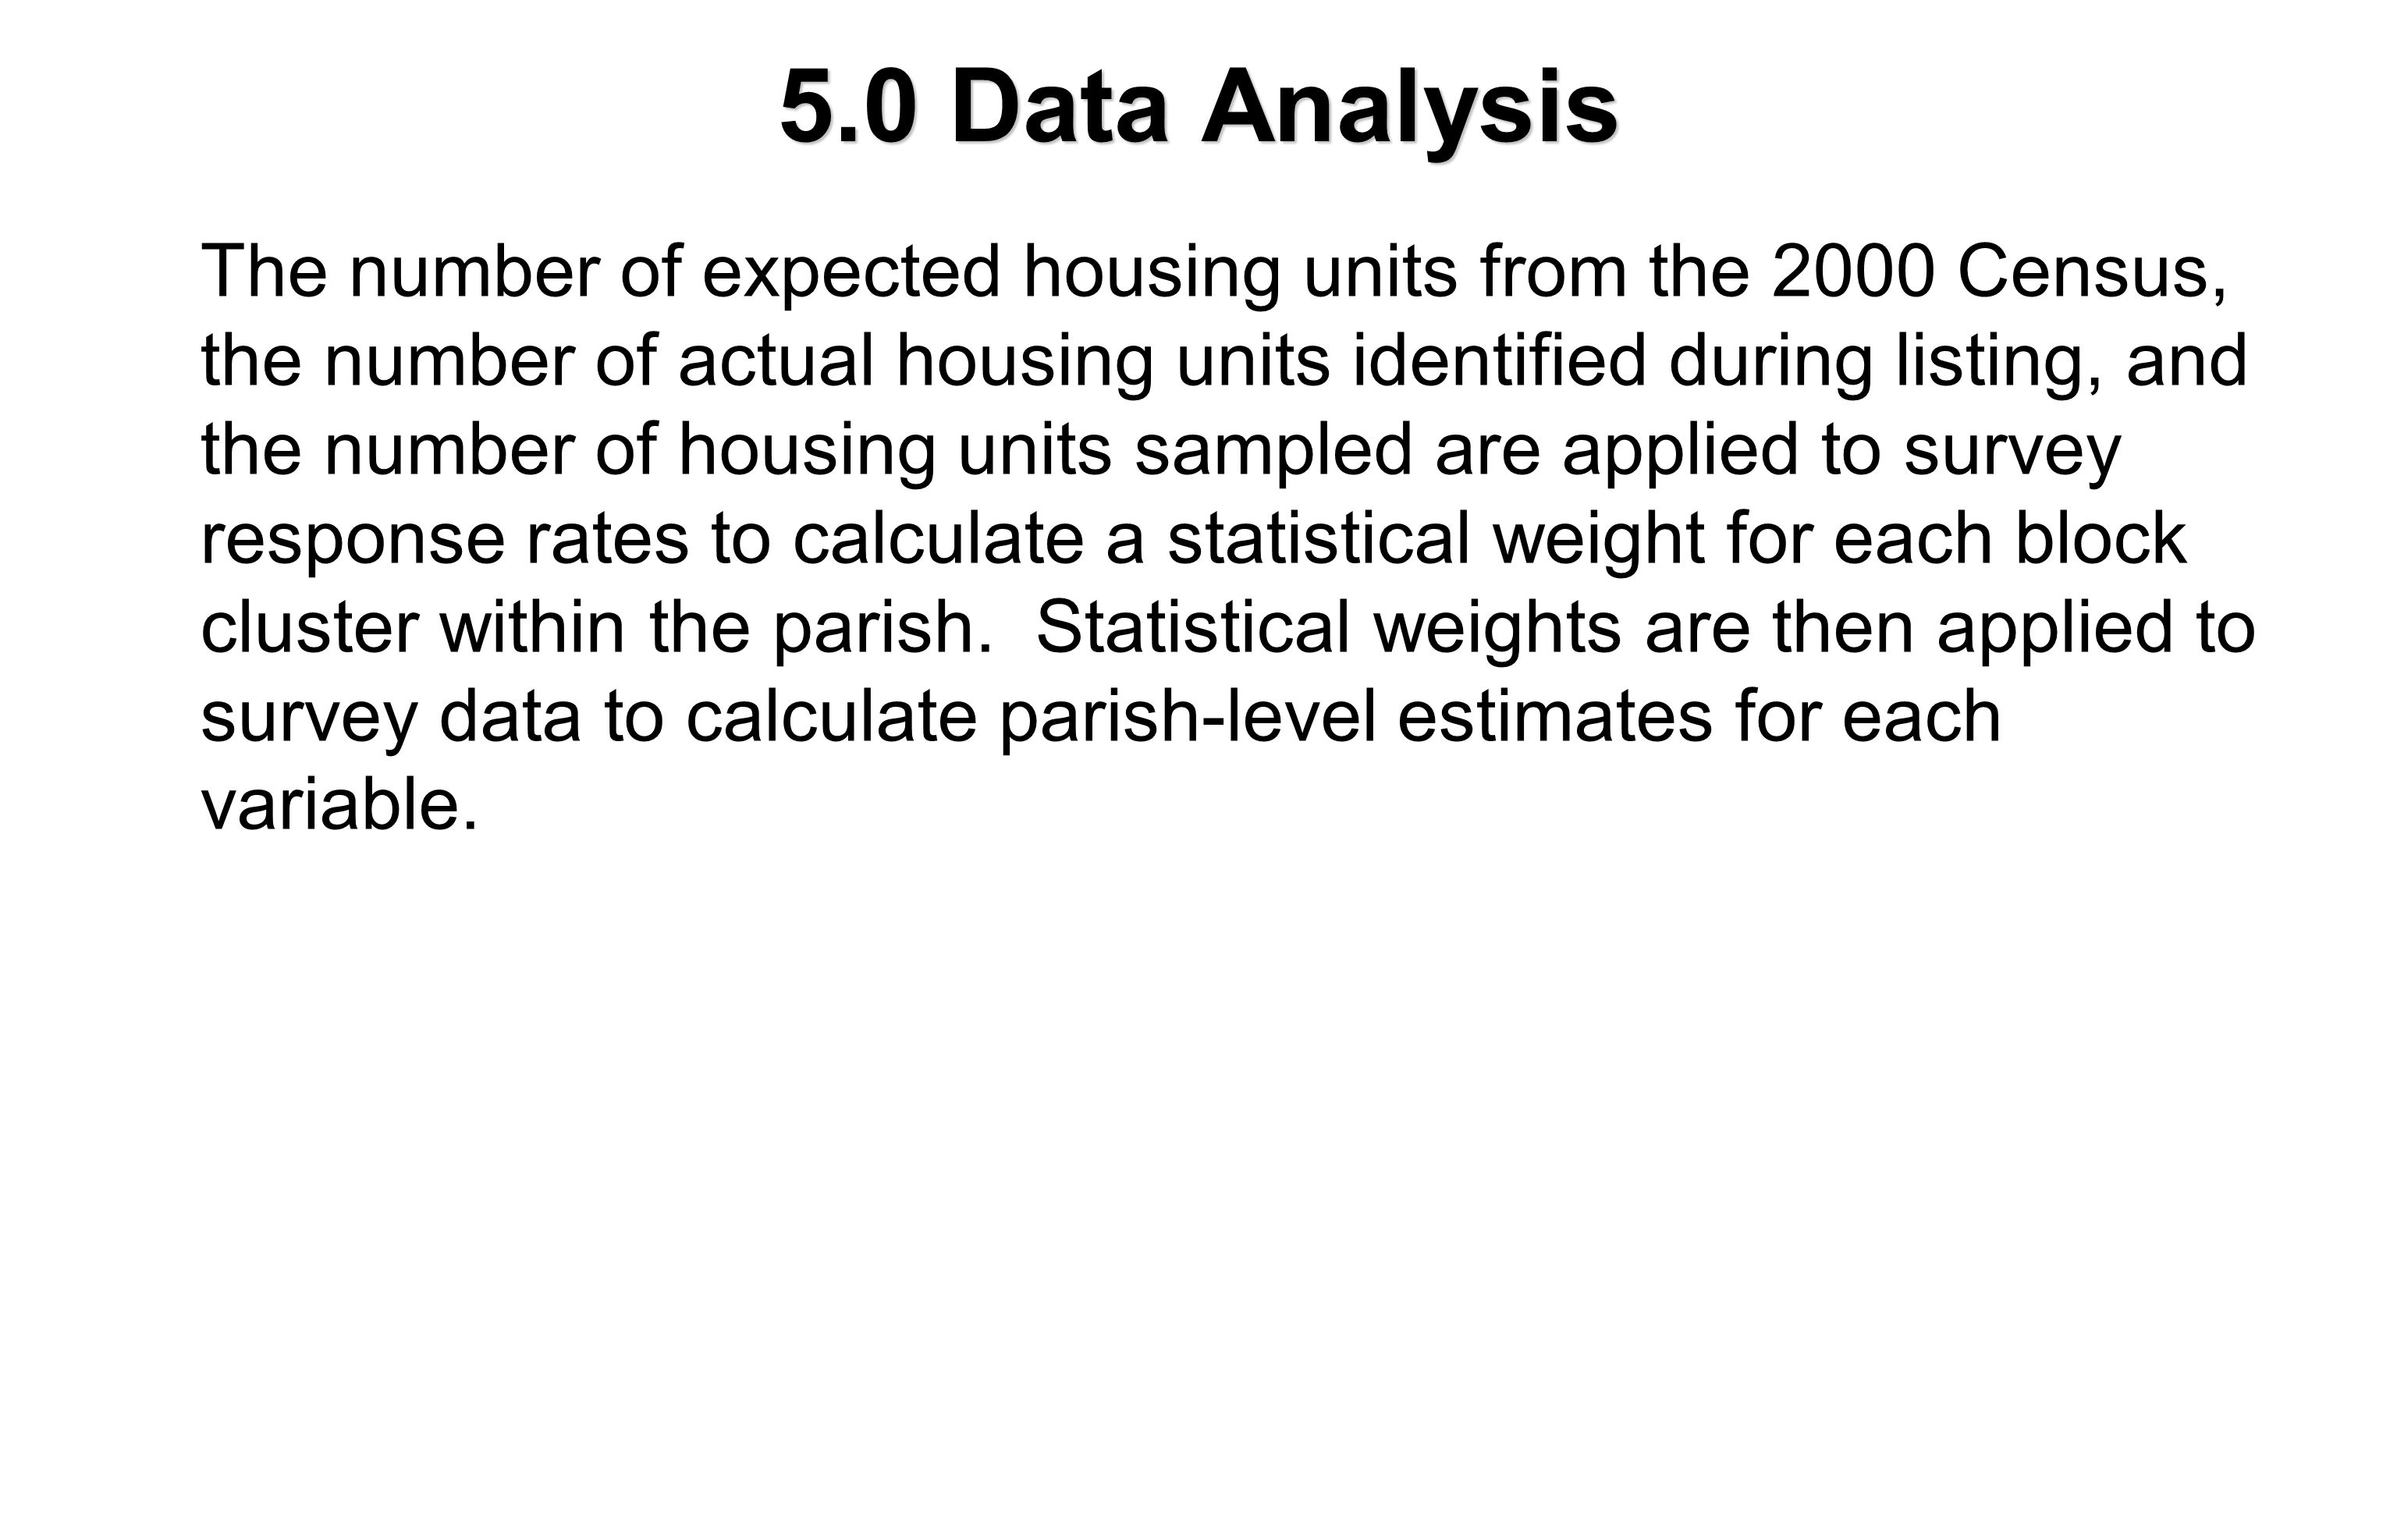 5.0 Data Analysis The number of expected housing units from the 2000 Census, the number of actual housing units identified during listing, and the number of housing units sampled are applied to survey response rates to calculate a statistical weight for each block cluster within the parish.